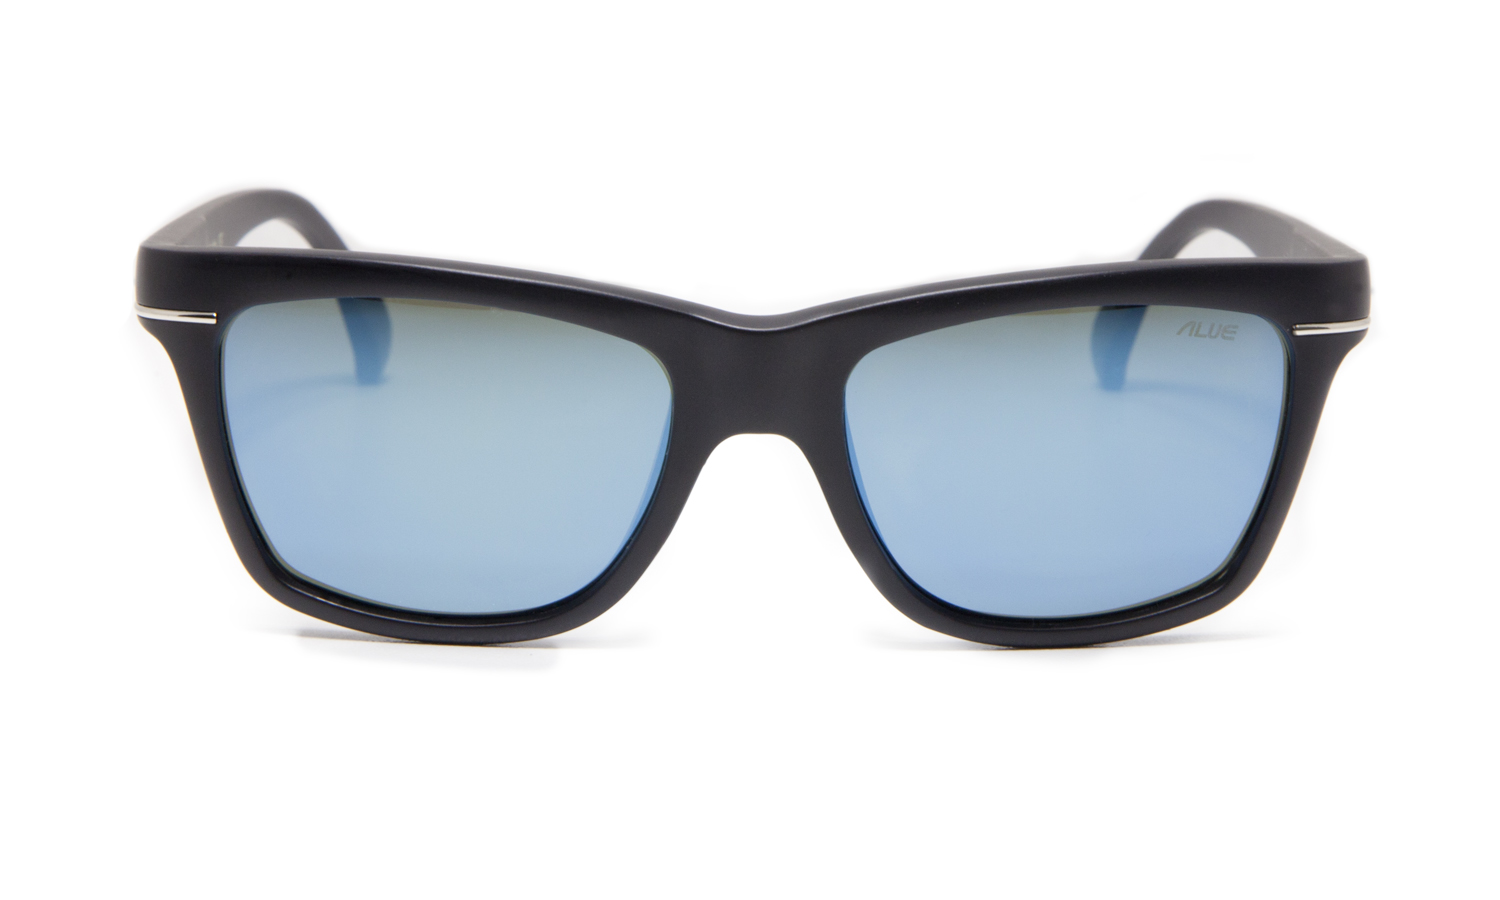 The Alue Six in Matte Noir withGrey AQ-Polarized Blue lens.